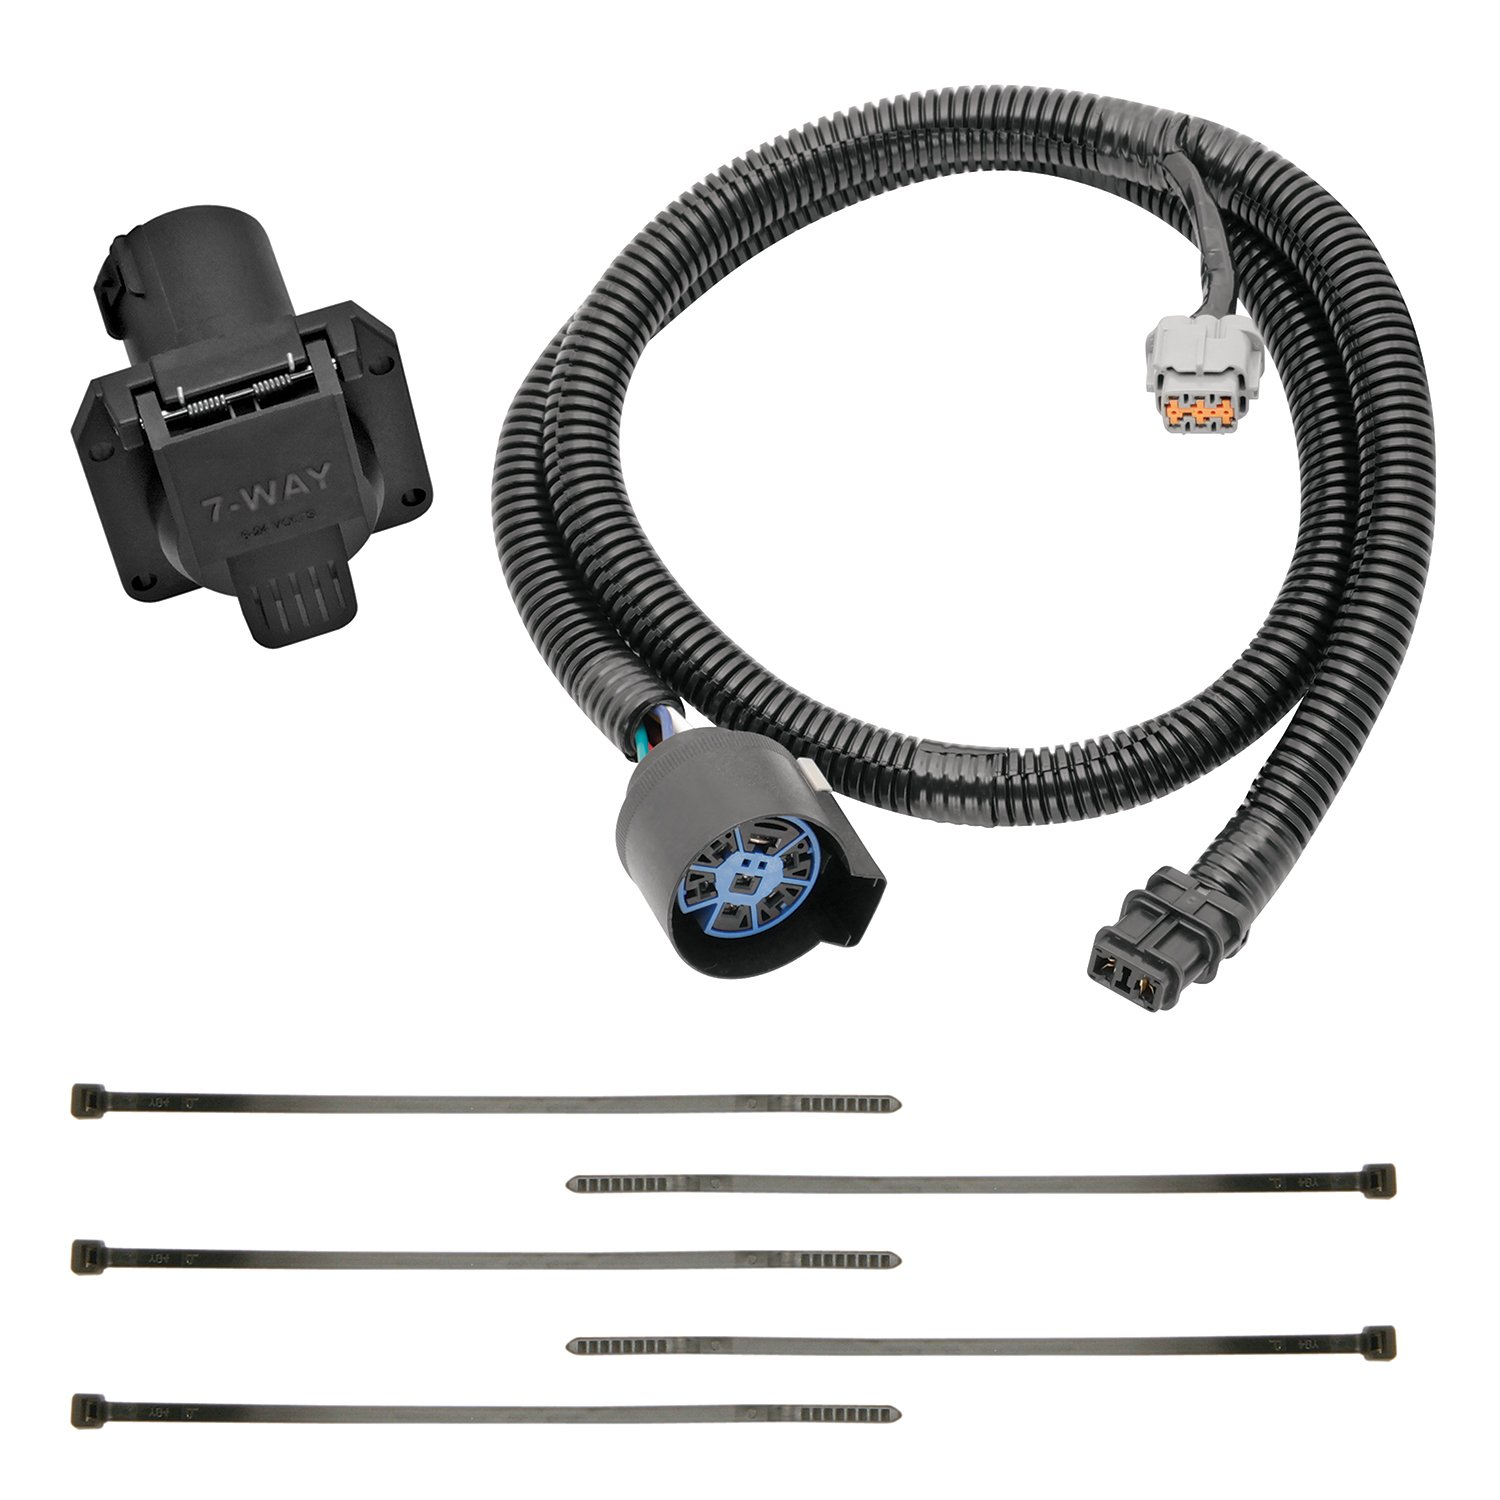 7 Pin Trailer Wiring Diagram Nissan Frontier Free Download For